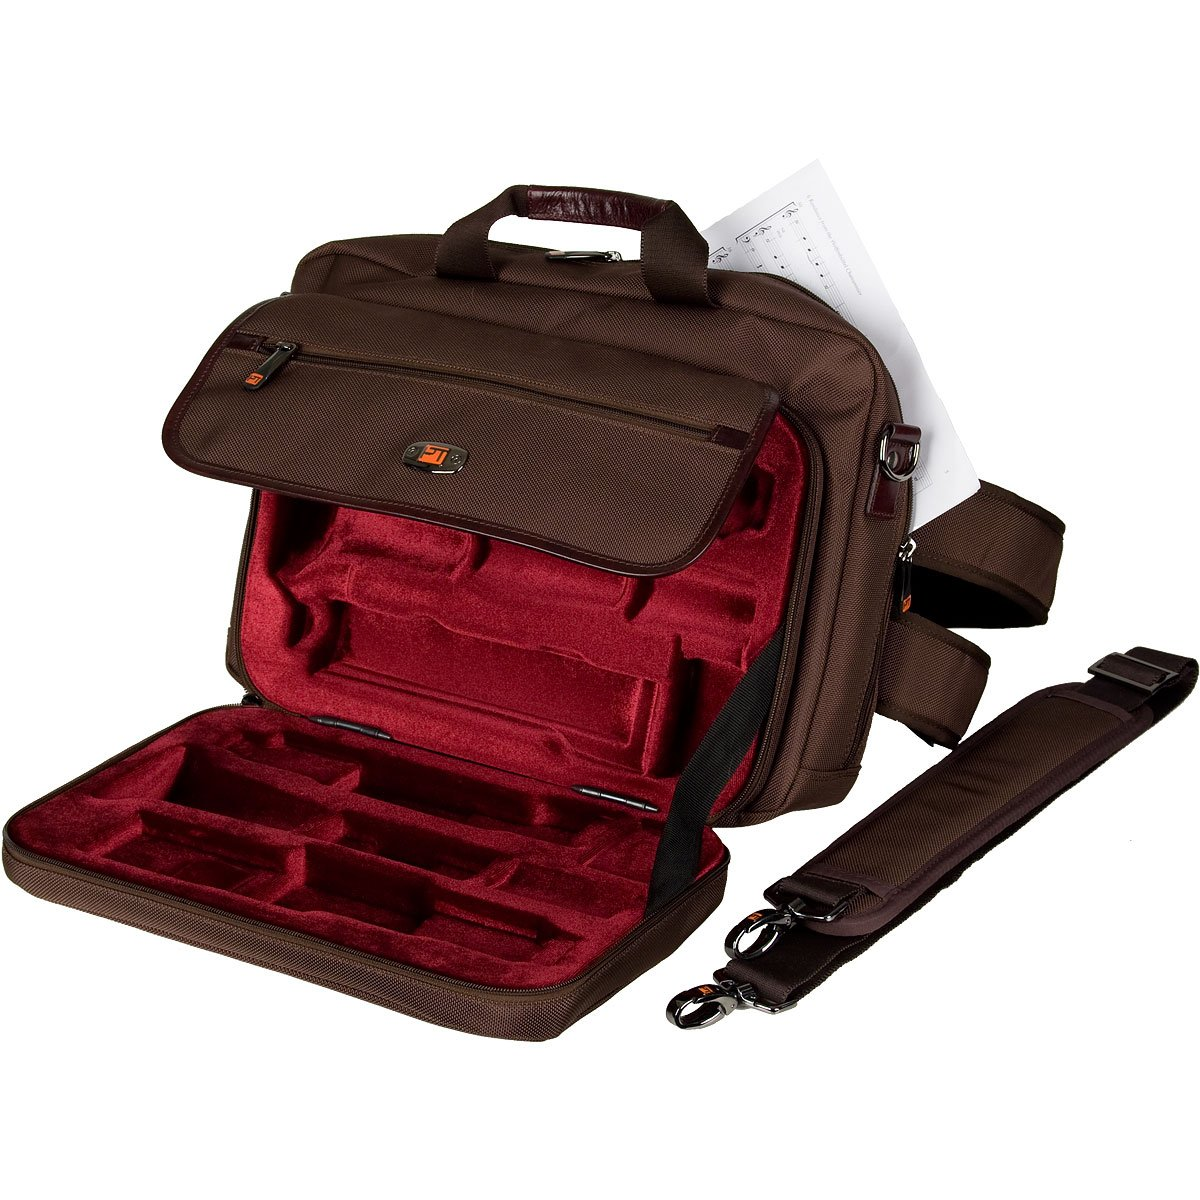 Protec Bb Clarinet Messenger LUX PRO PAC Case LX307